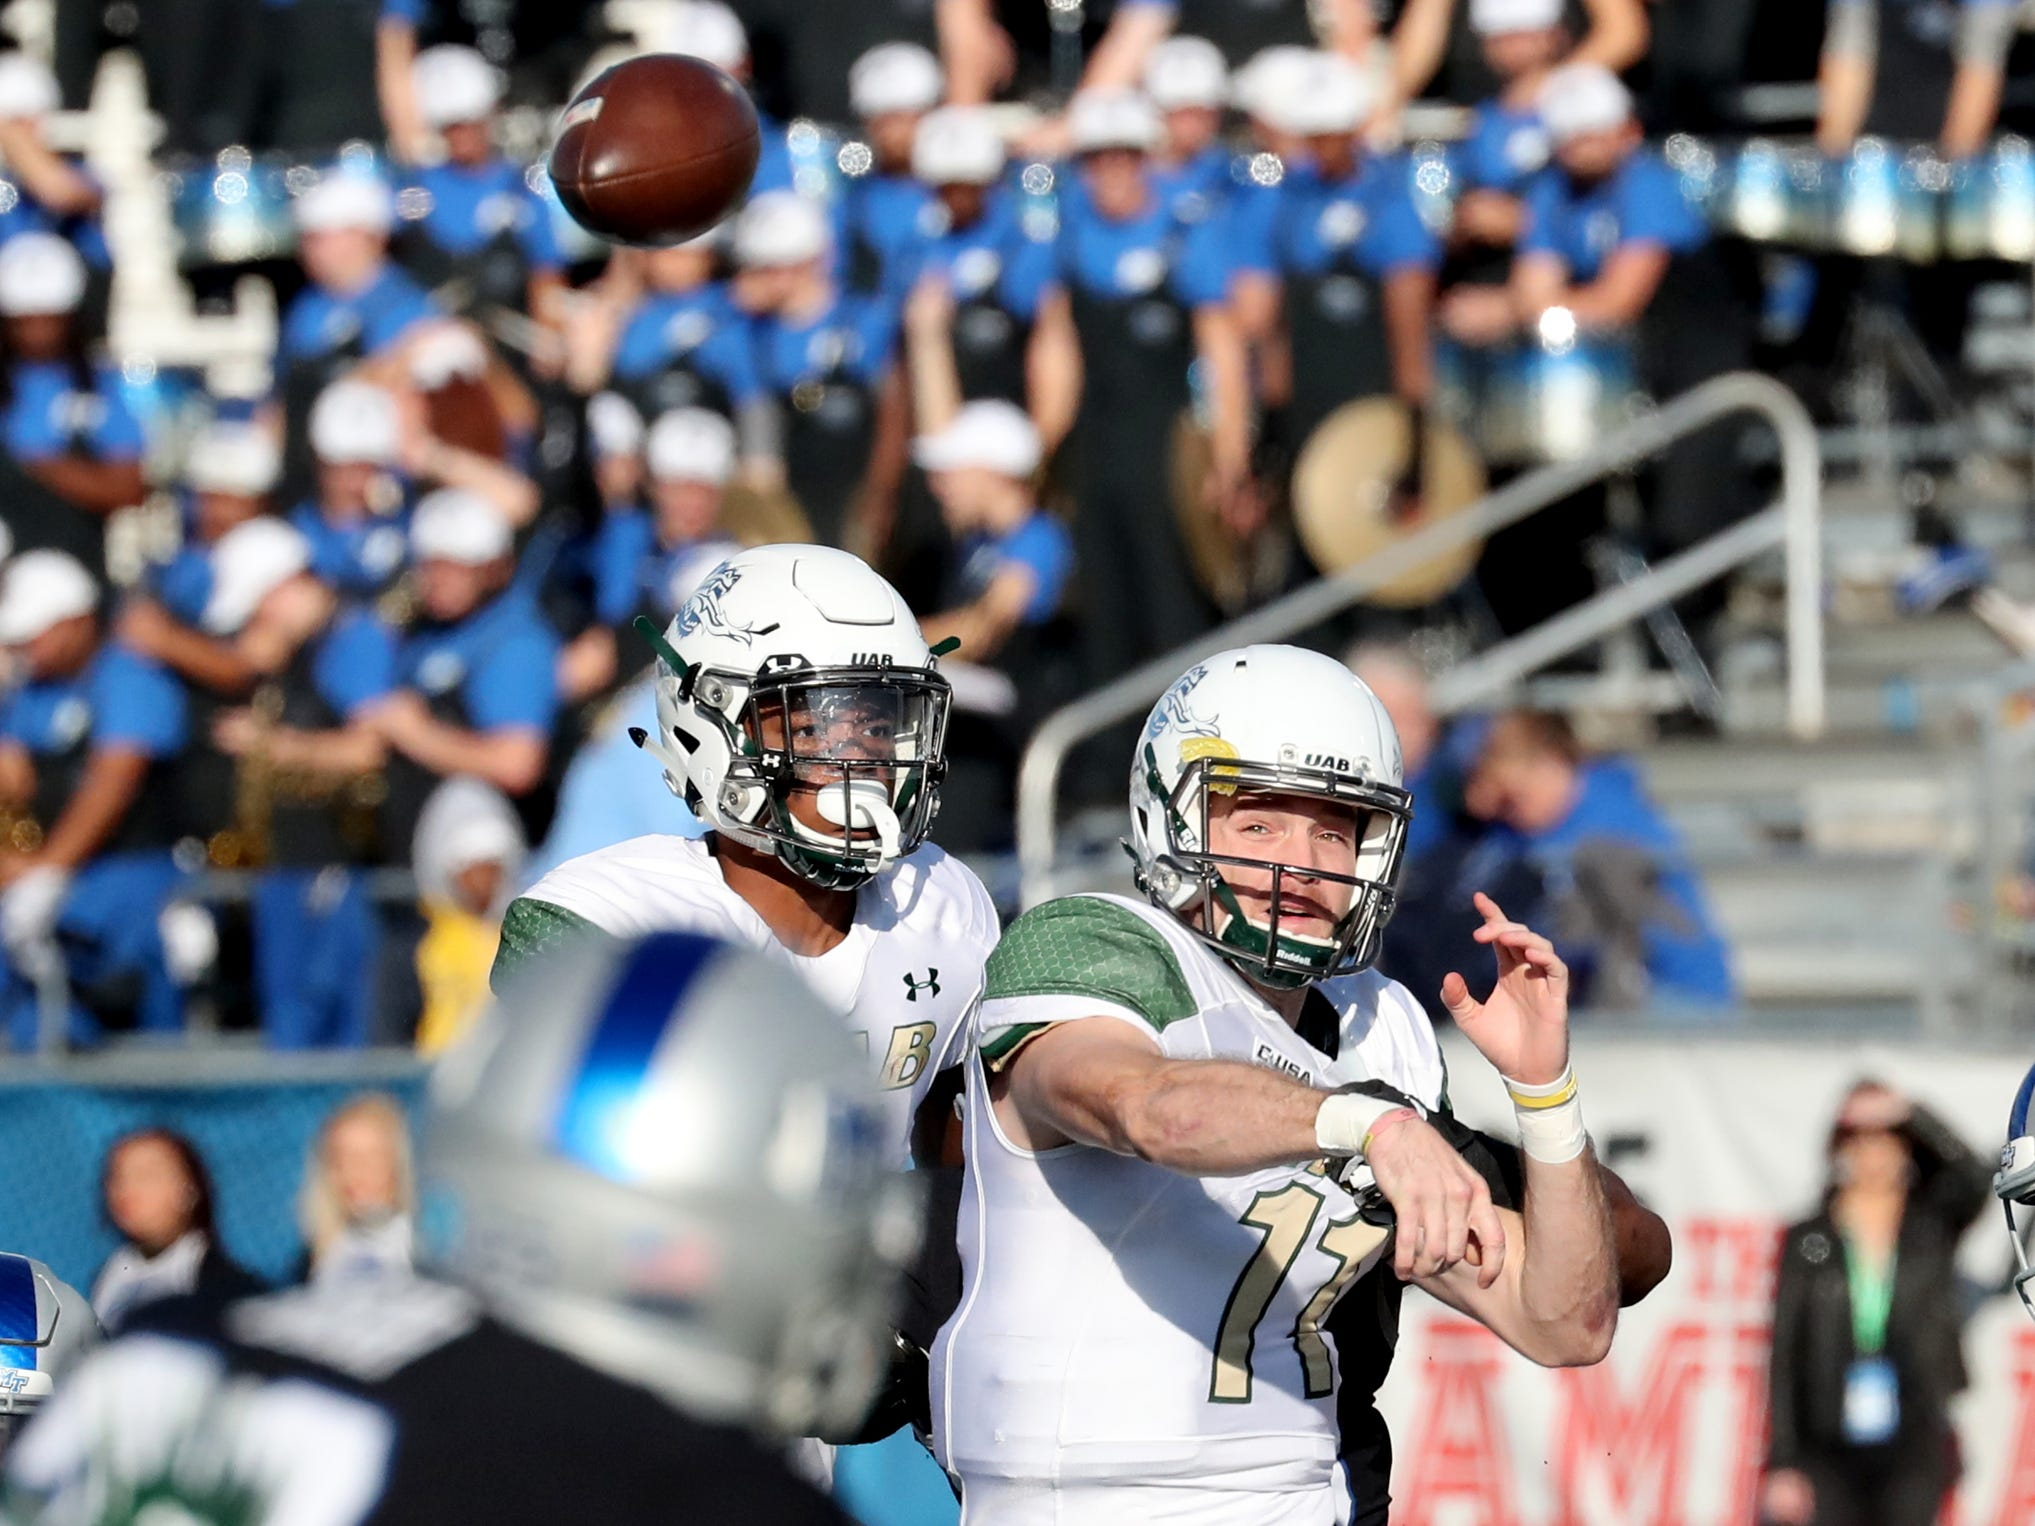 UAB's quarterback AJ Erdely (11) passes the ball as MTSU's Darius Harris (30) grabs him from behind during the game at MTSU on Saturday, Nov. 24, 2018.